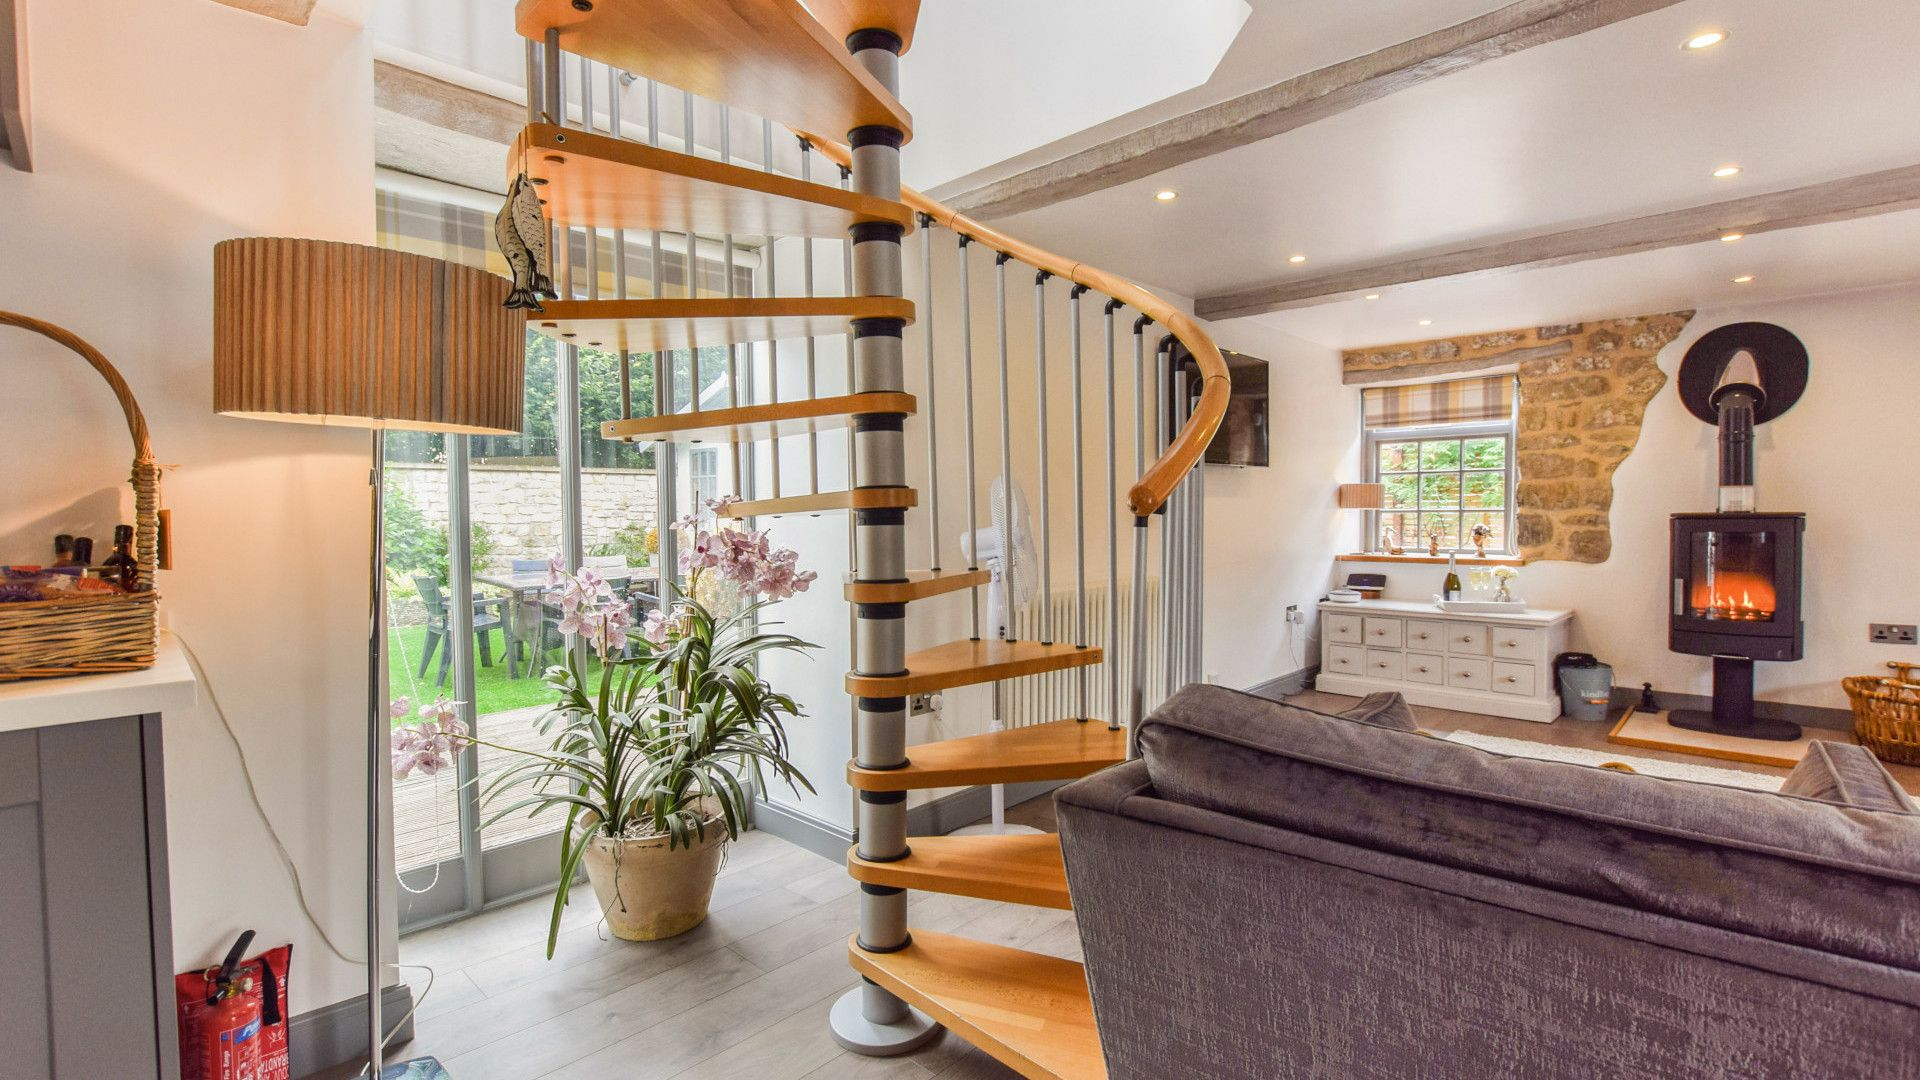 Living area with spiral staircase, Stable Cottage at Avon Farm, Bolthole Retreats